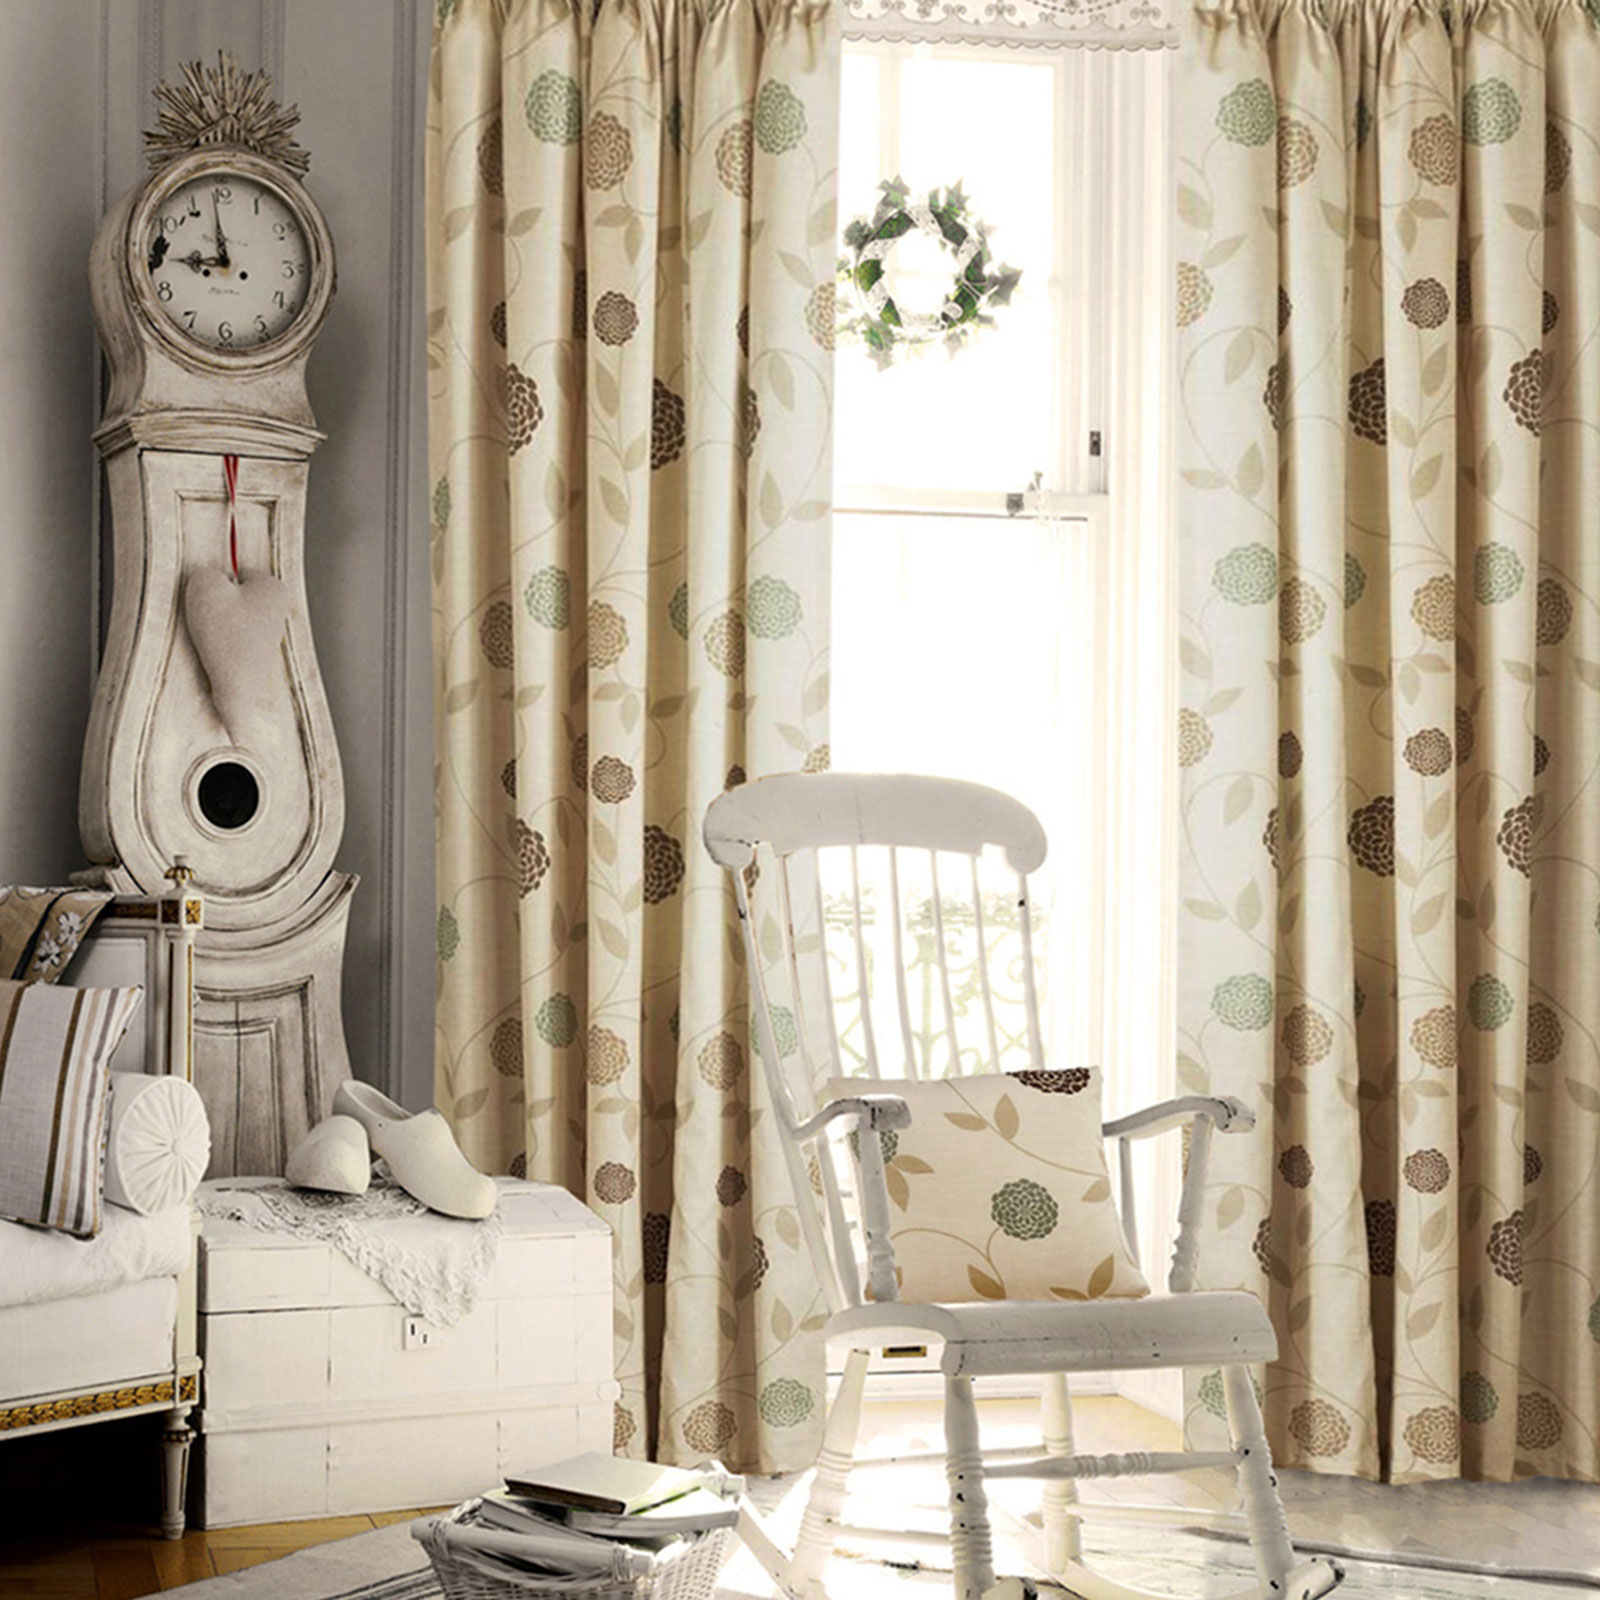 Lined Bedroom Curtains Floral Pencil Pleat Curtains Living Room Bedroom Ready Made Fully